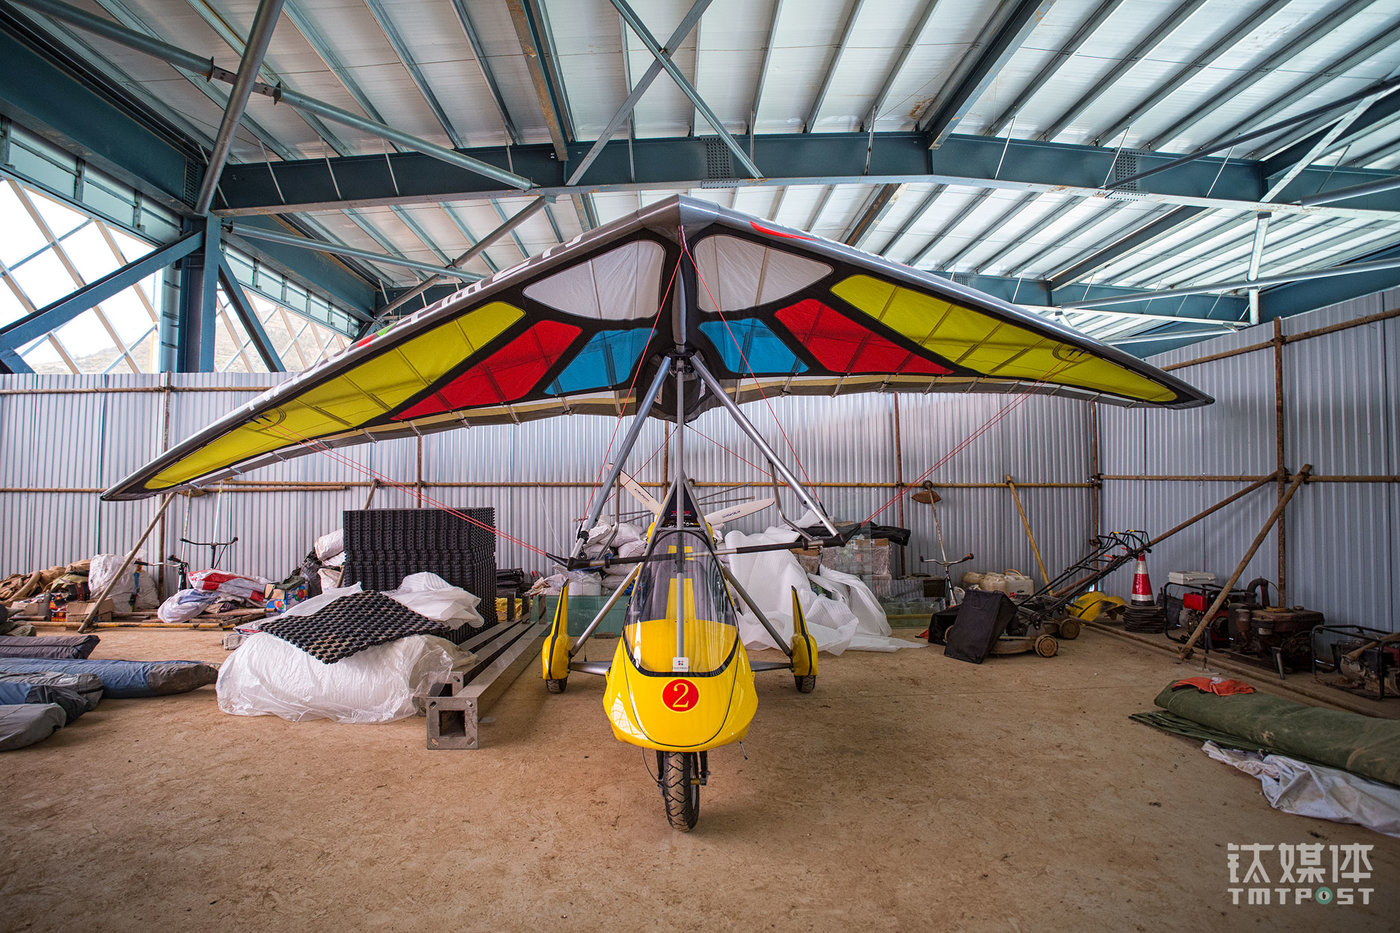 A powered paraglider in the temporary hangar. This paraglider can reach a cruising speed of 100km/h and it's mainly used for aviation training, touristic use, aerial photography, and forest protection etc. Its lowest flying height can be as low as one meter while the highest can be 5,000 meters.